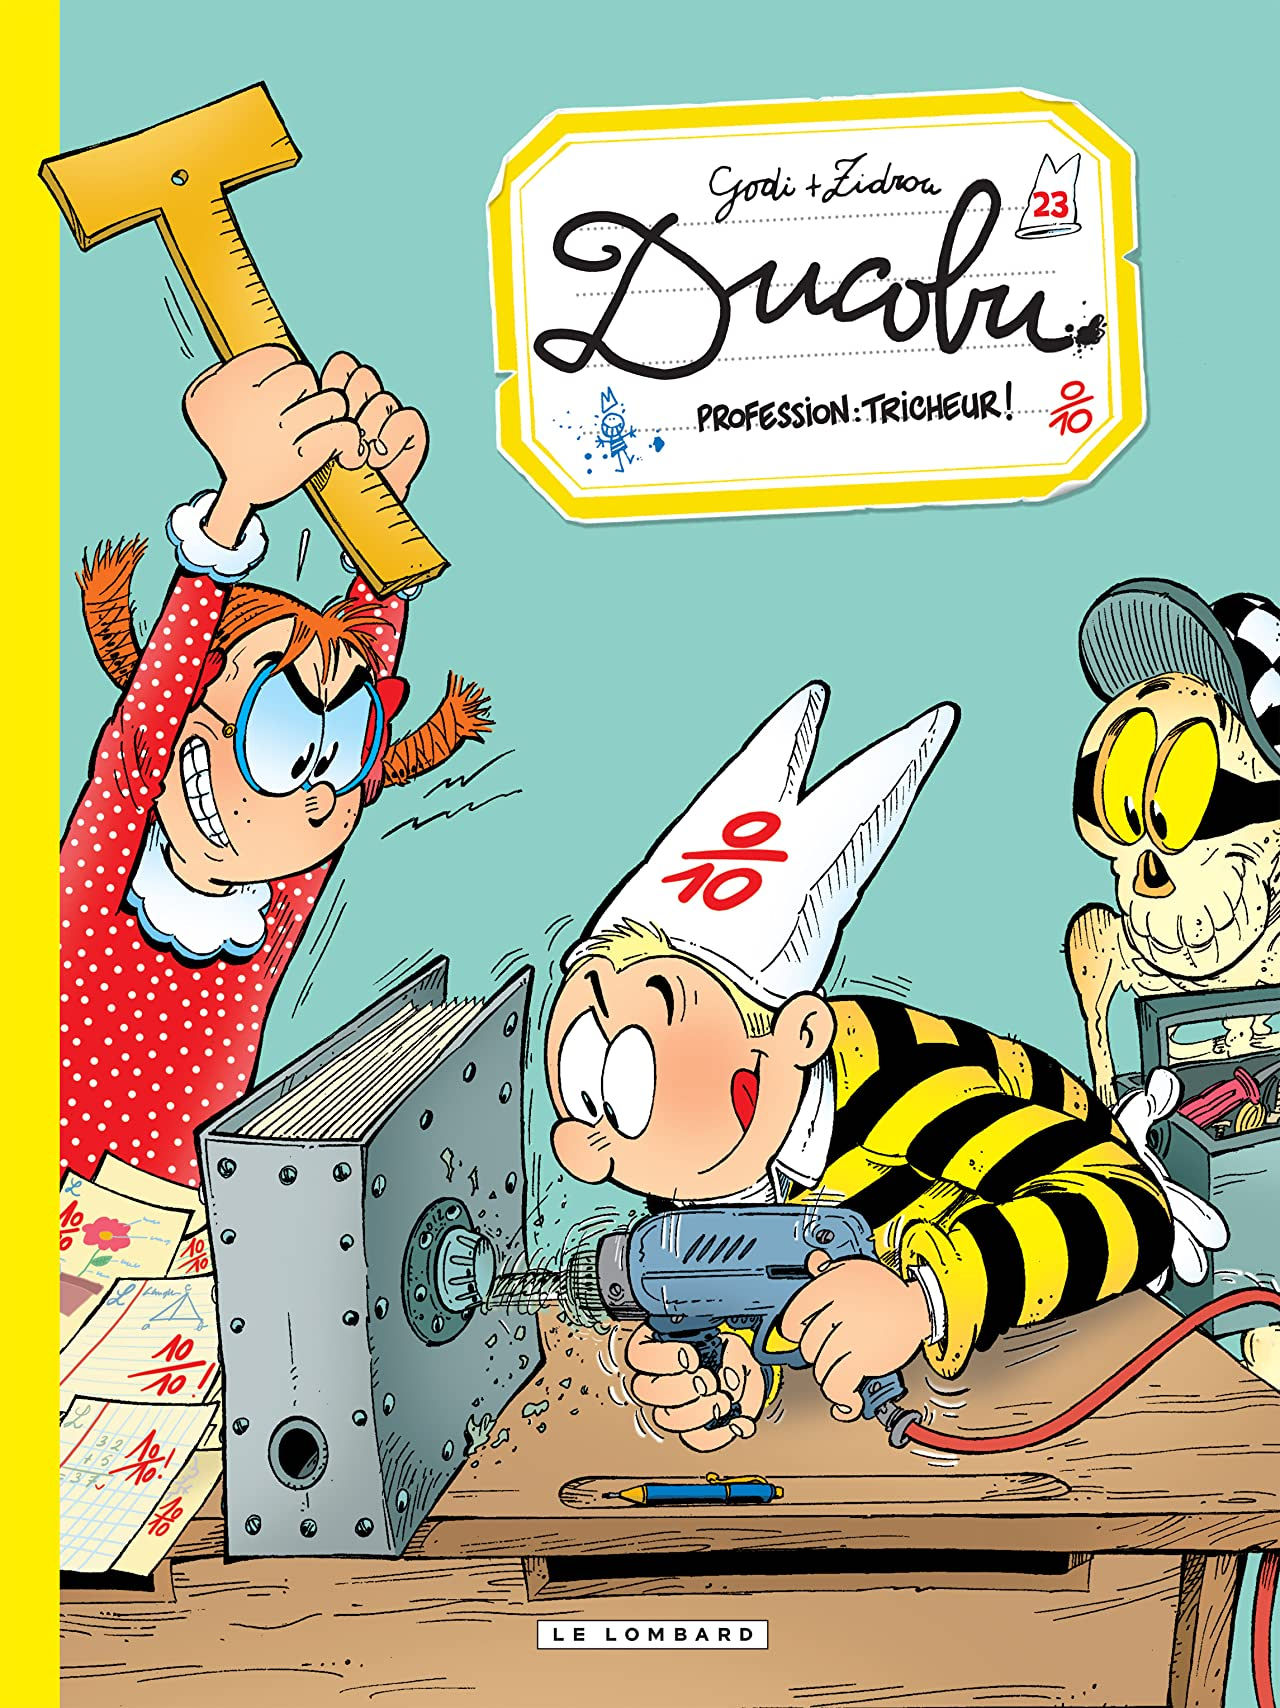 L'Elève Ducobu Vol. 23: Profession: tricheur !